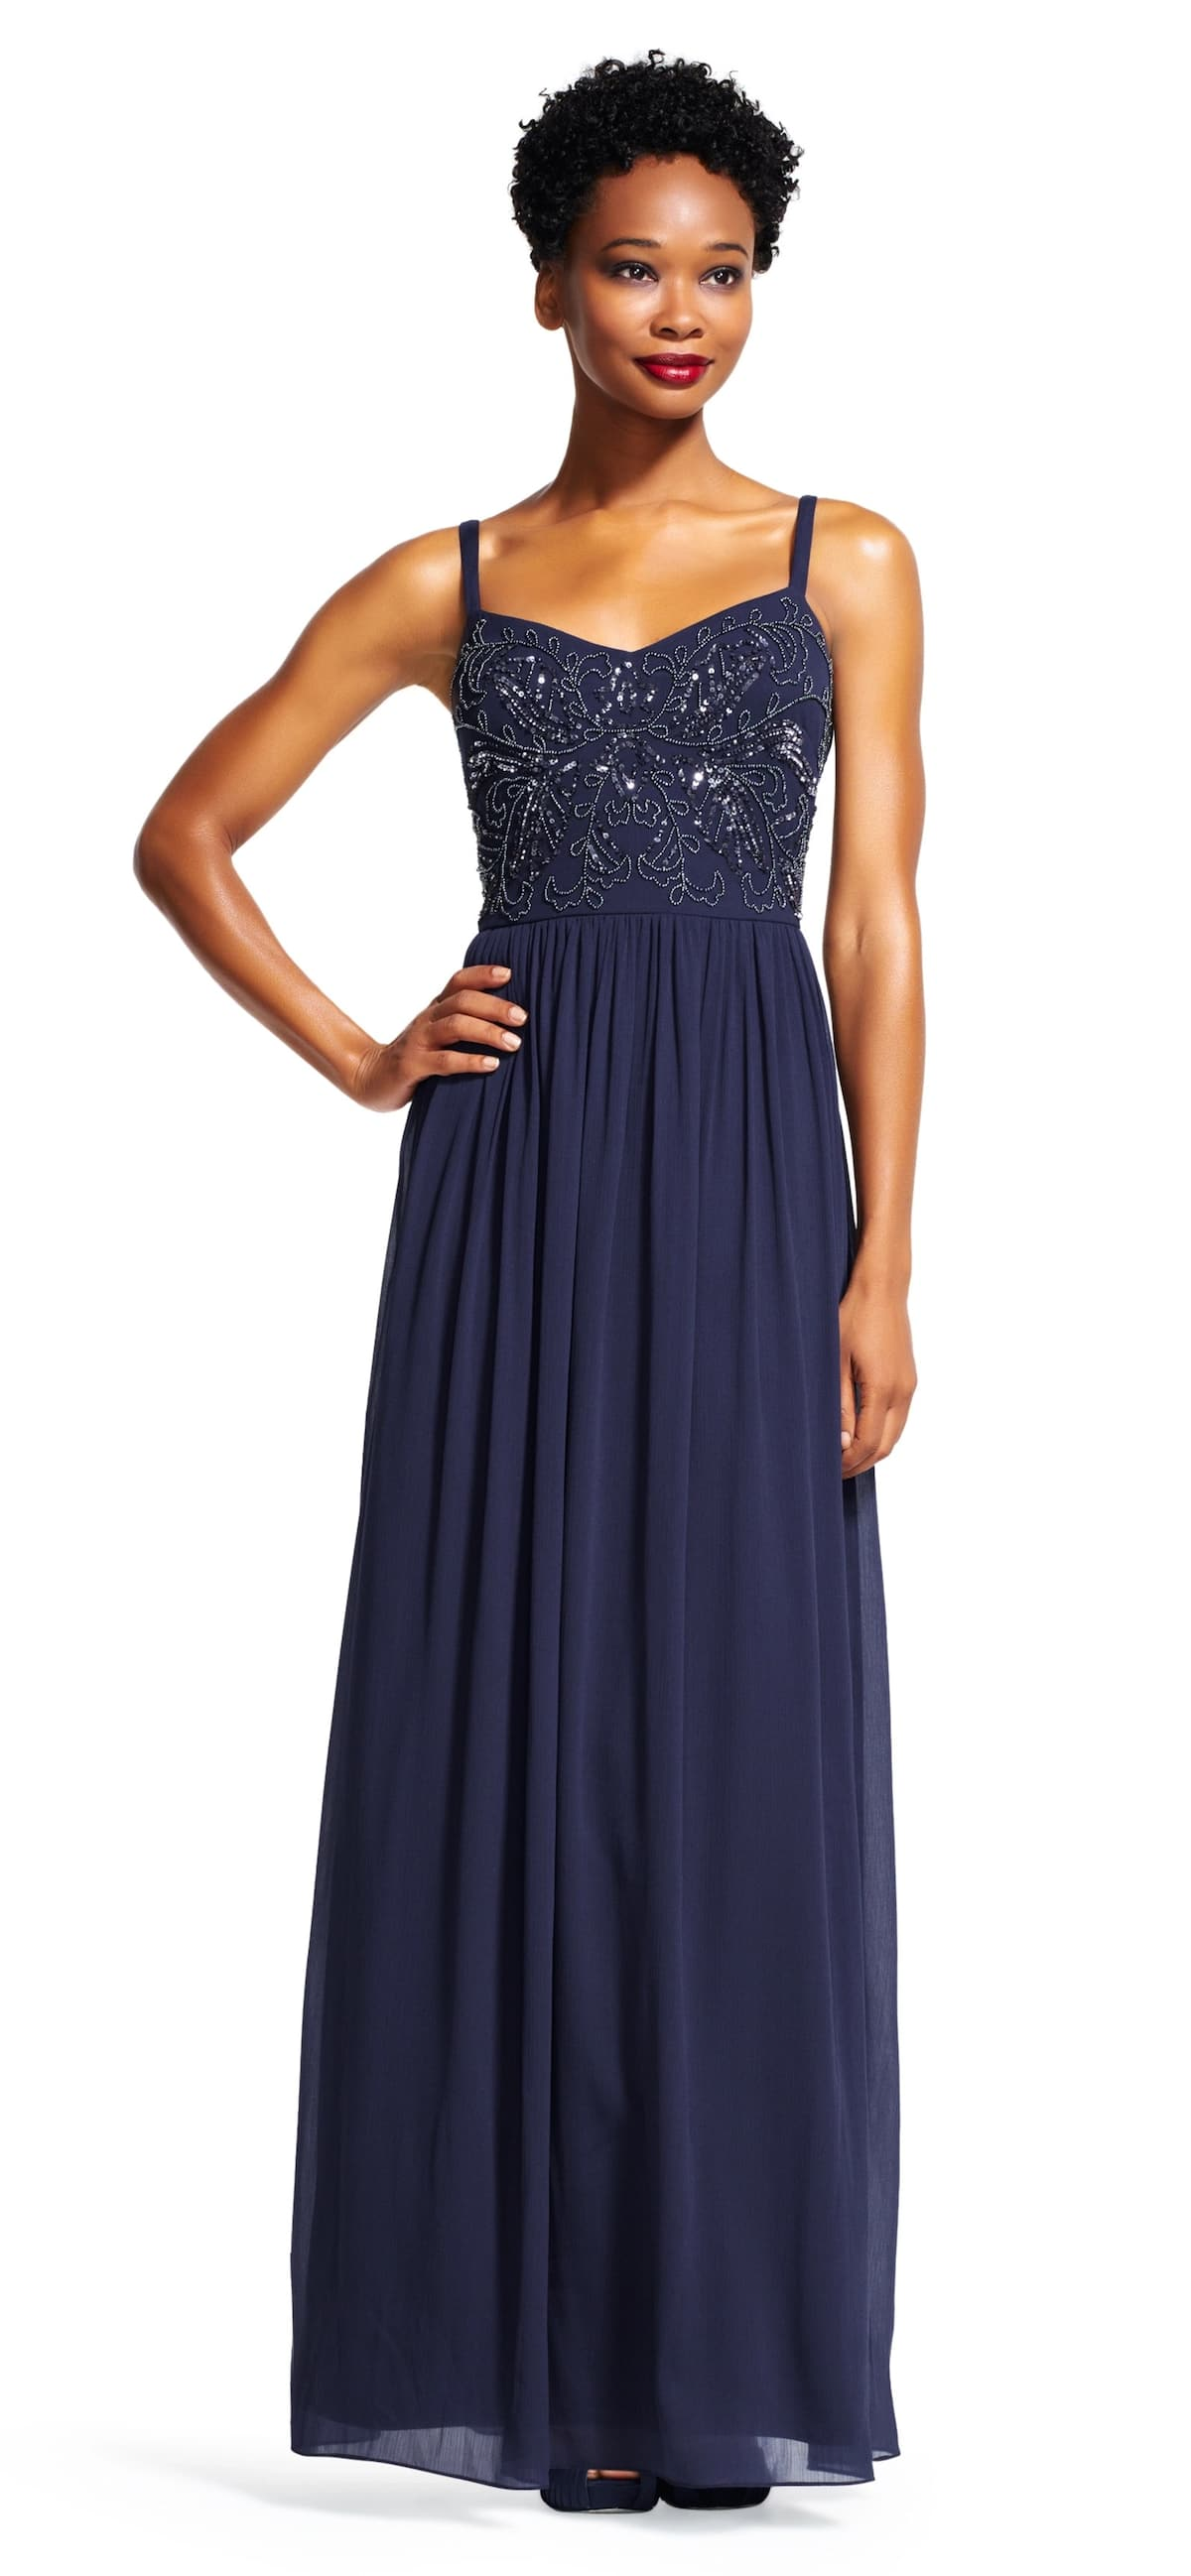 Chiffon evening maxi gown with decor